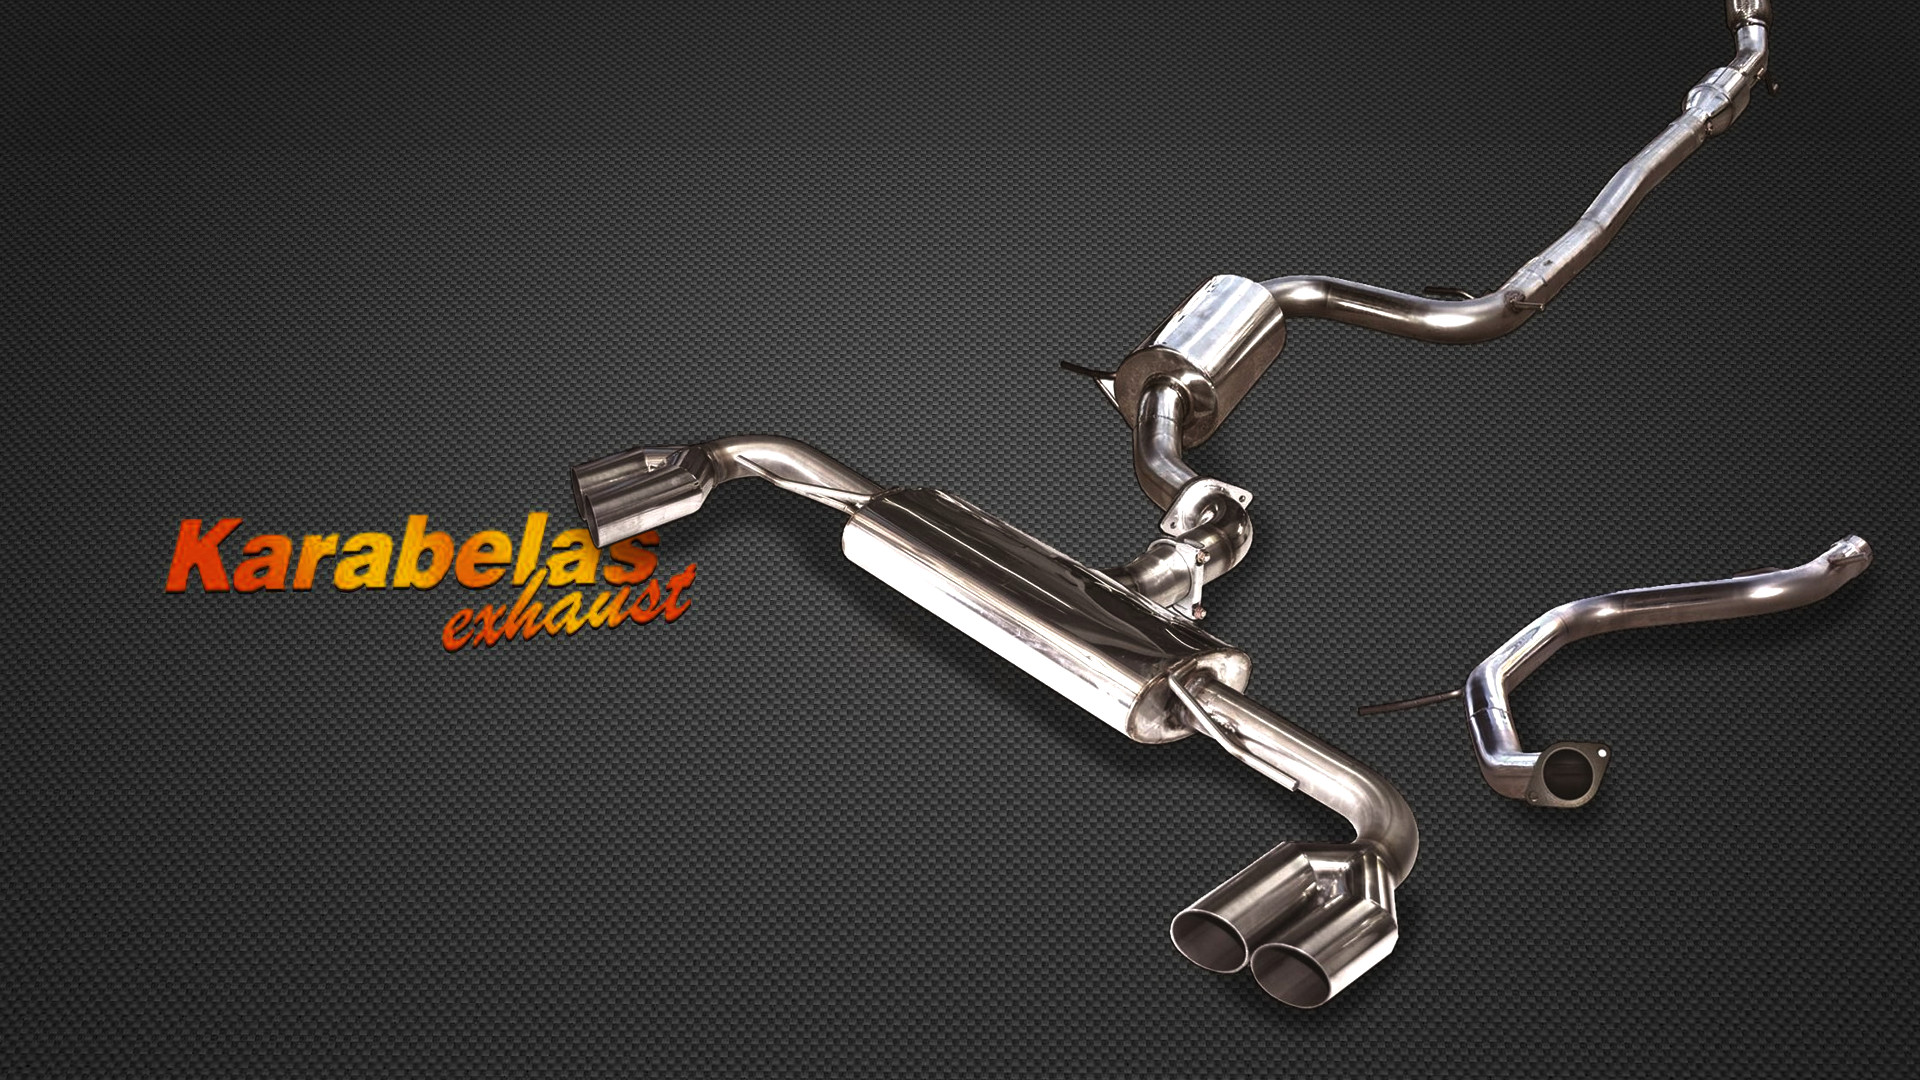 <h2>Integrated exhaust systems</h2><div class='bgslideshowmore'><a href='http://www.karabelasexhaust.4tyshop.gr/products/en/8959/%CE%9F%CE%9B%CE%9F%CE%9A%CE%9B%CE%97%CE%A1%CE%A9%CE%9C%CE%95%CE%9D%CE%91%20%CE%A3%CE%A5%CE%A3%CE%A4%CE%97%CE%9C%CE%91%CE%A4%CE%91' target='_blank'>More...</a></div>